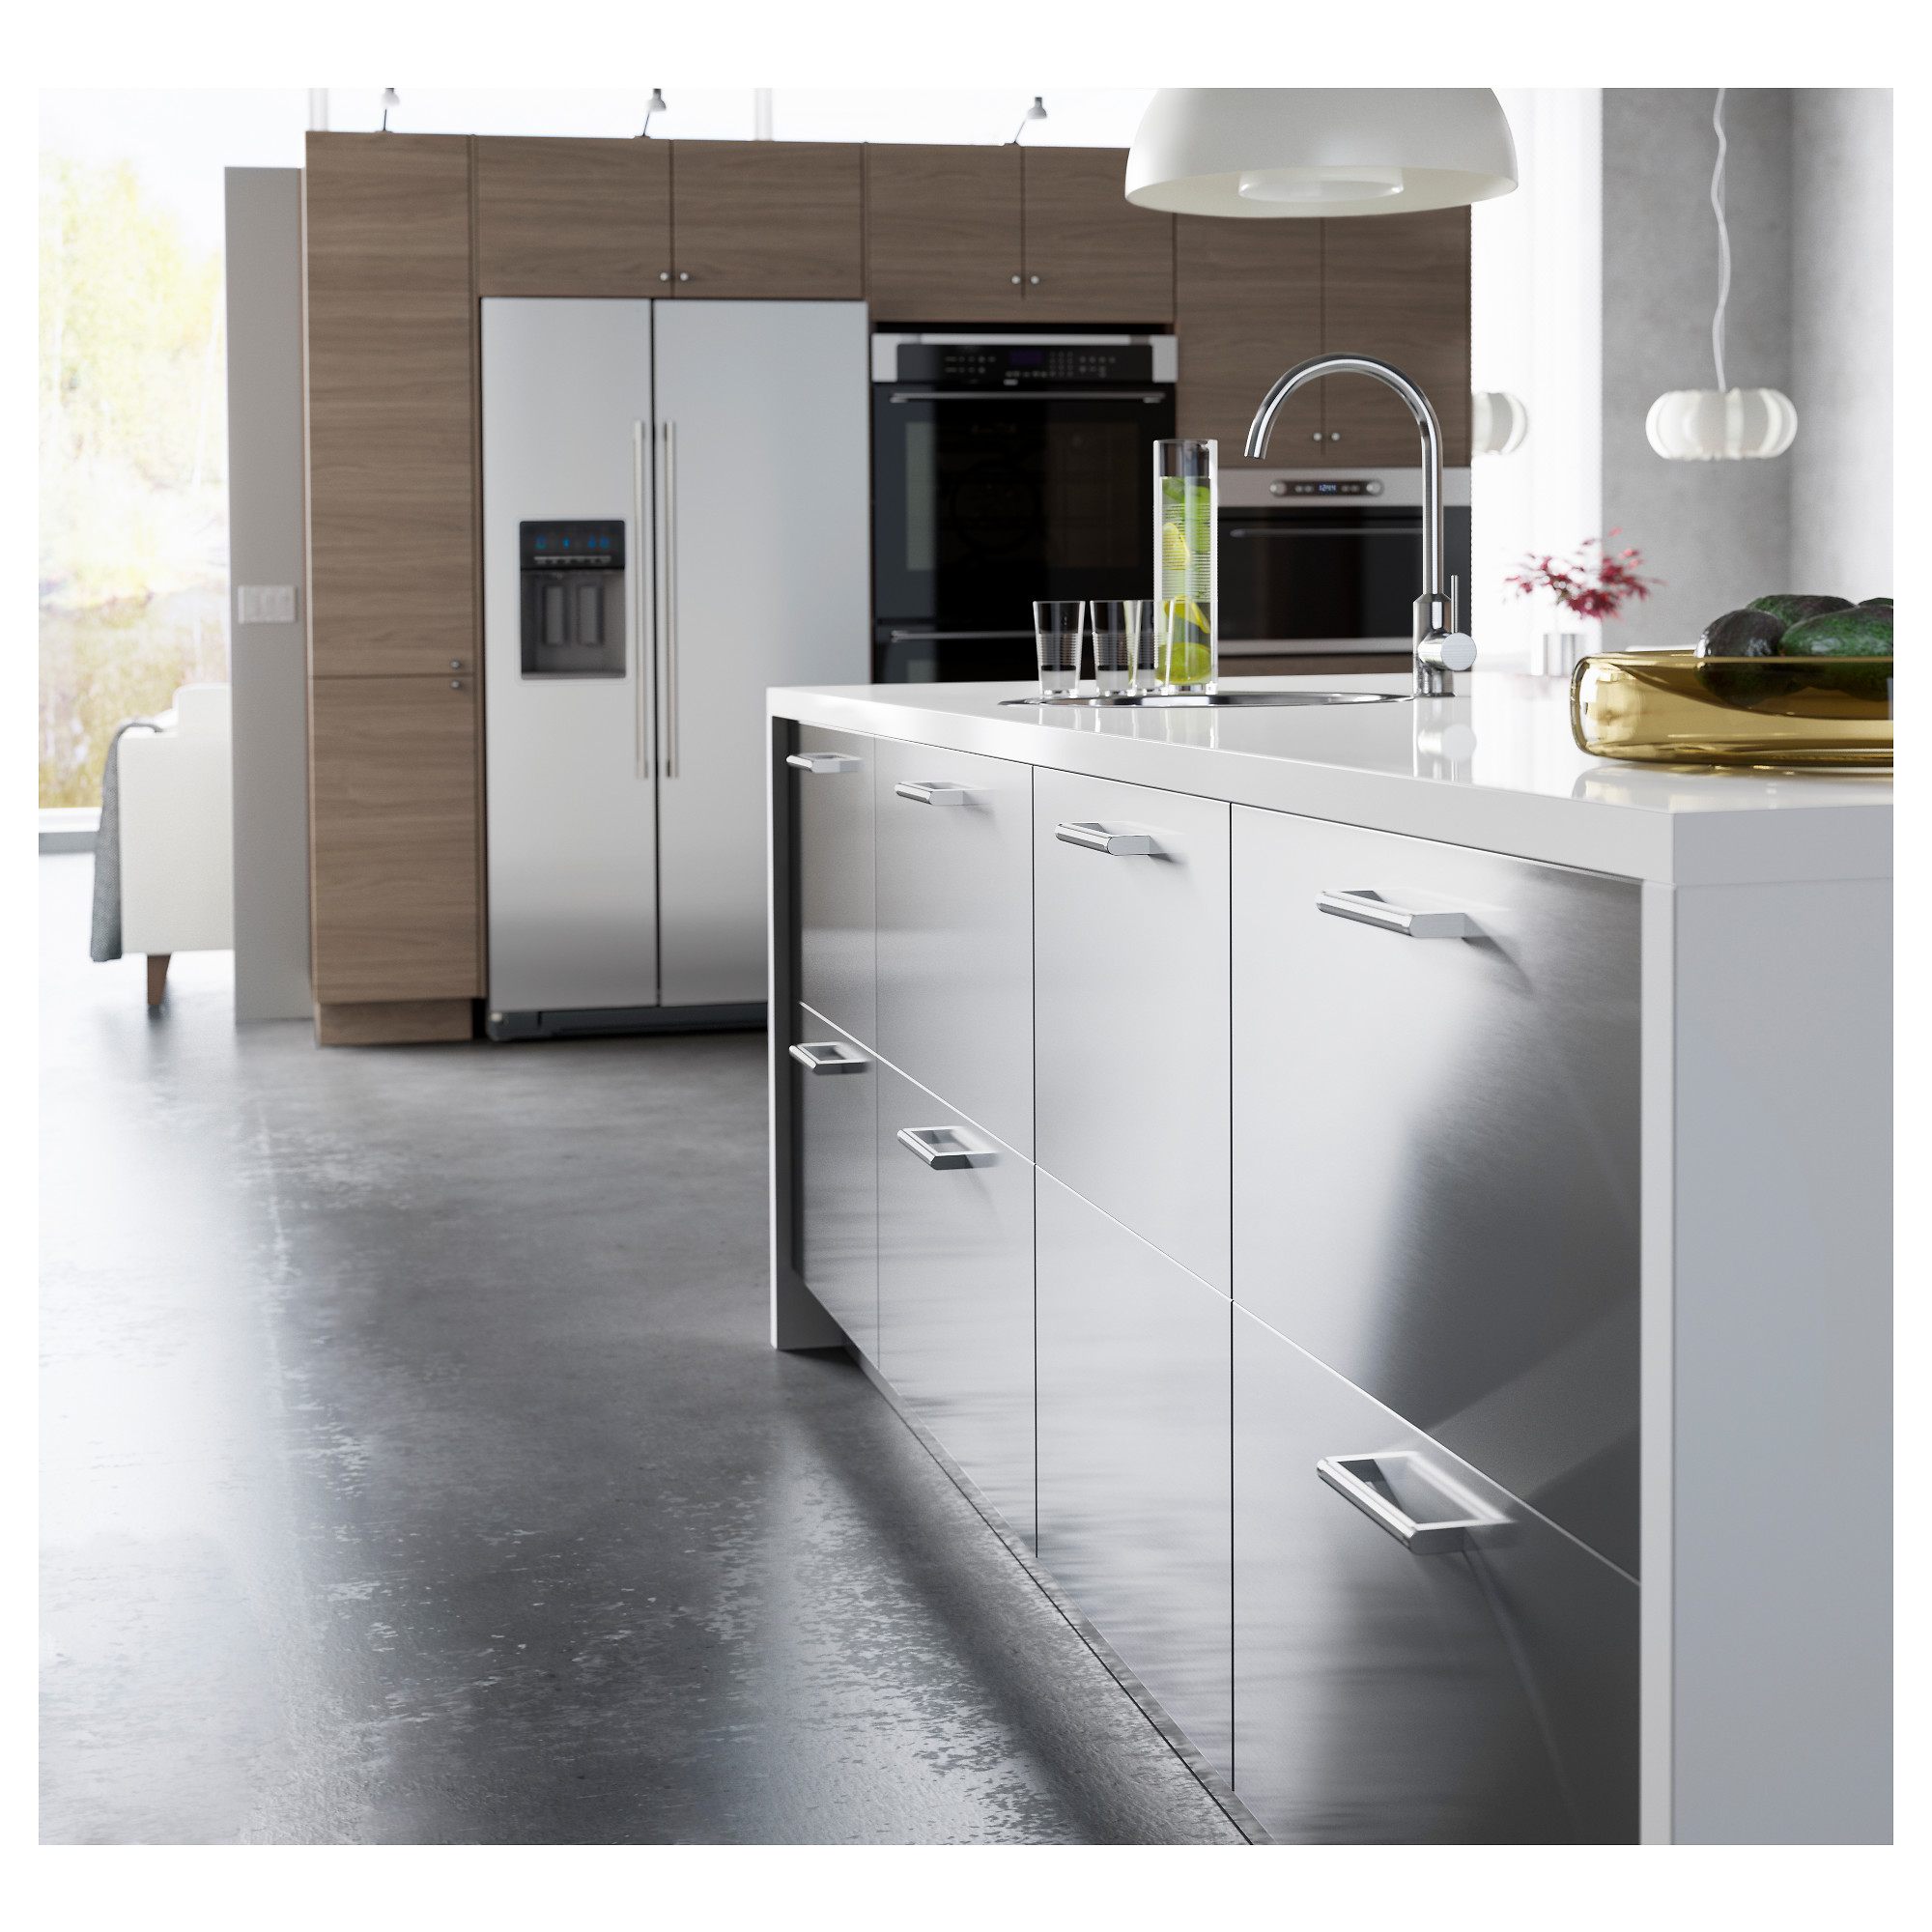 "Stainless Steel Kitchen Cabinet Doors Grevsta Door  18X30 ""  Ikea"